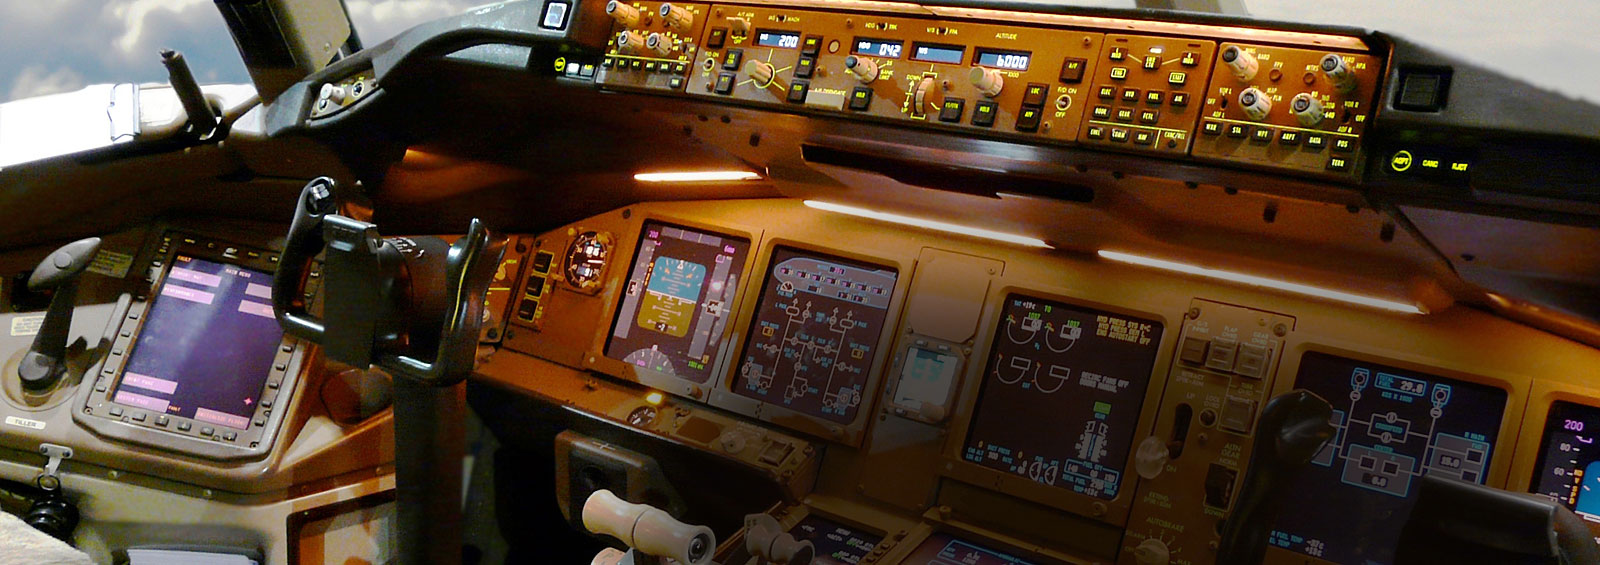 You will find our products both in: The Cabin (Panel & Displays) & Outside The Plane (Navigation & Guidance Equipment)